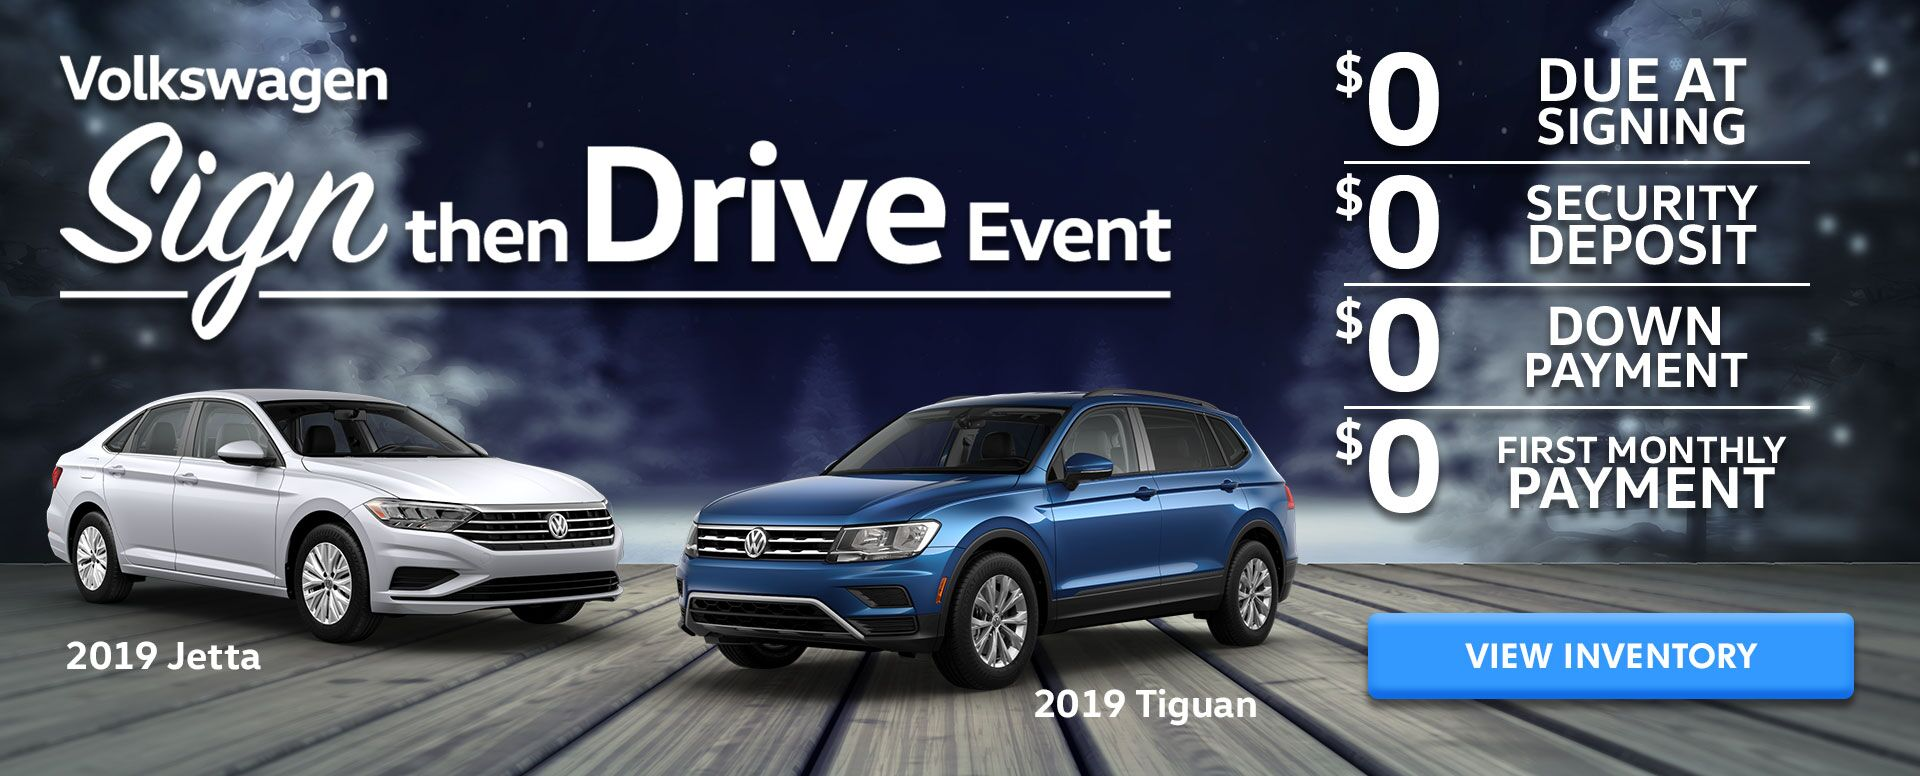 Sign Then Drive Event